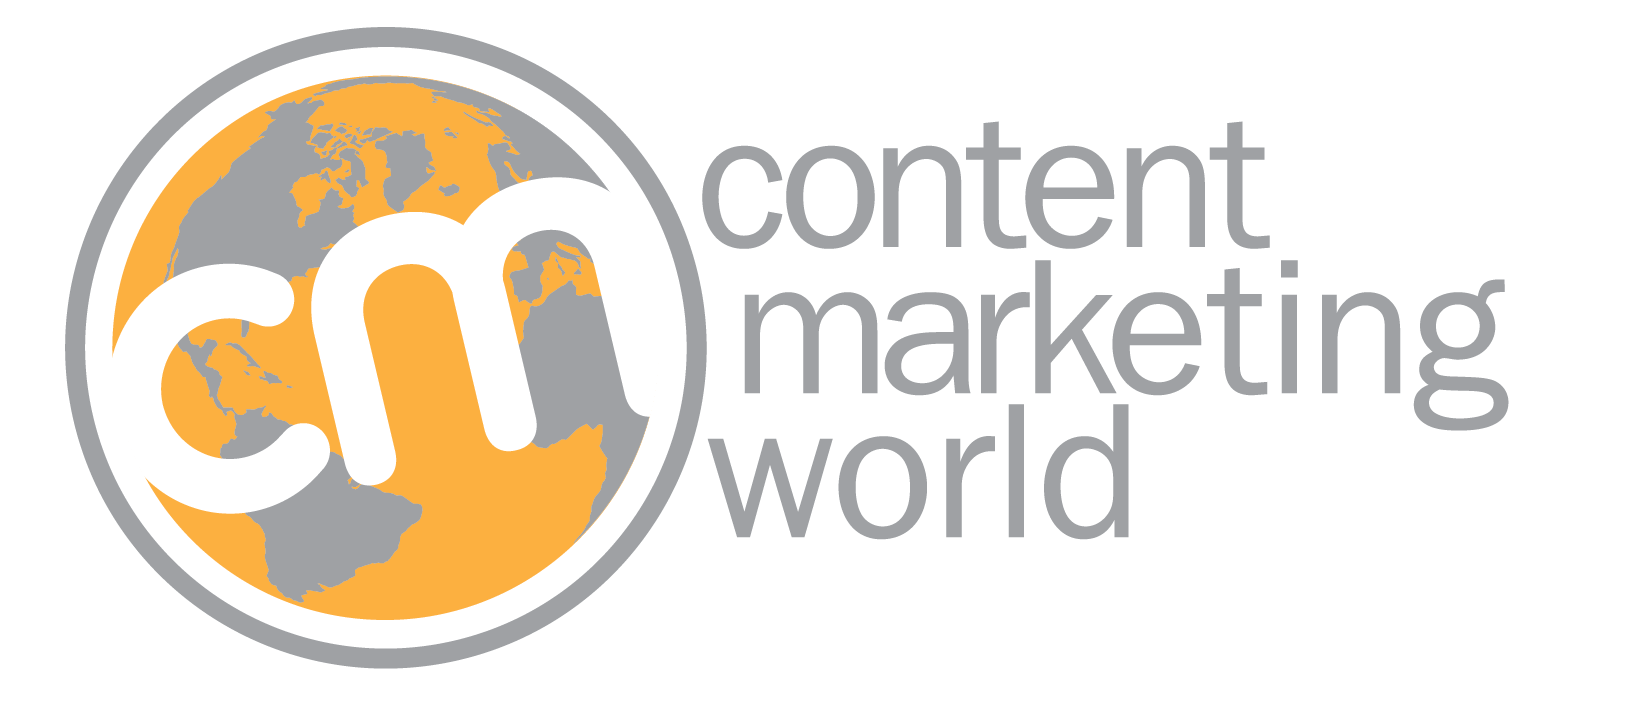 content marketing world logo